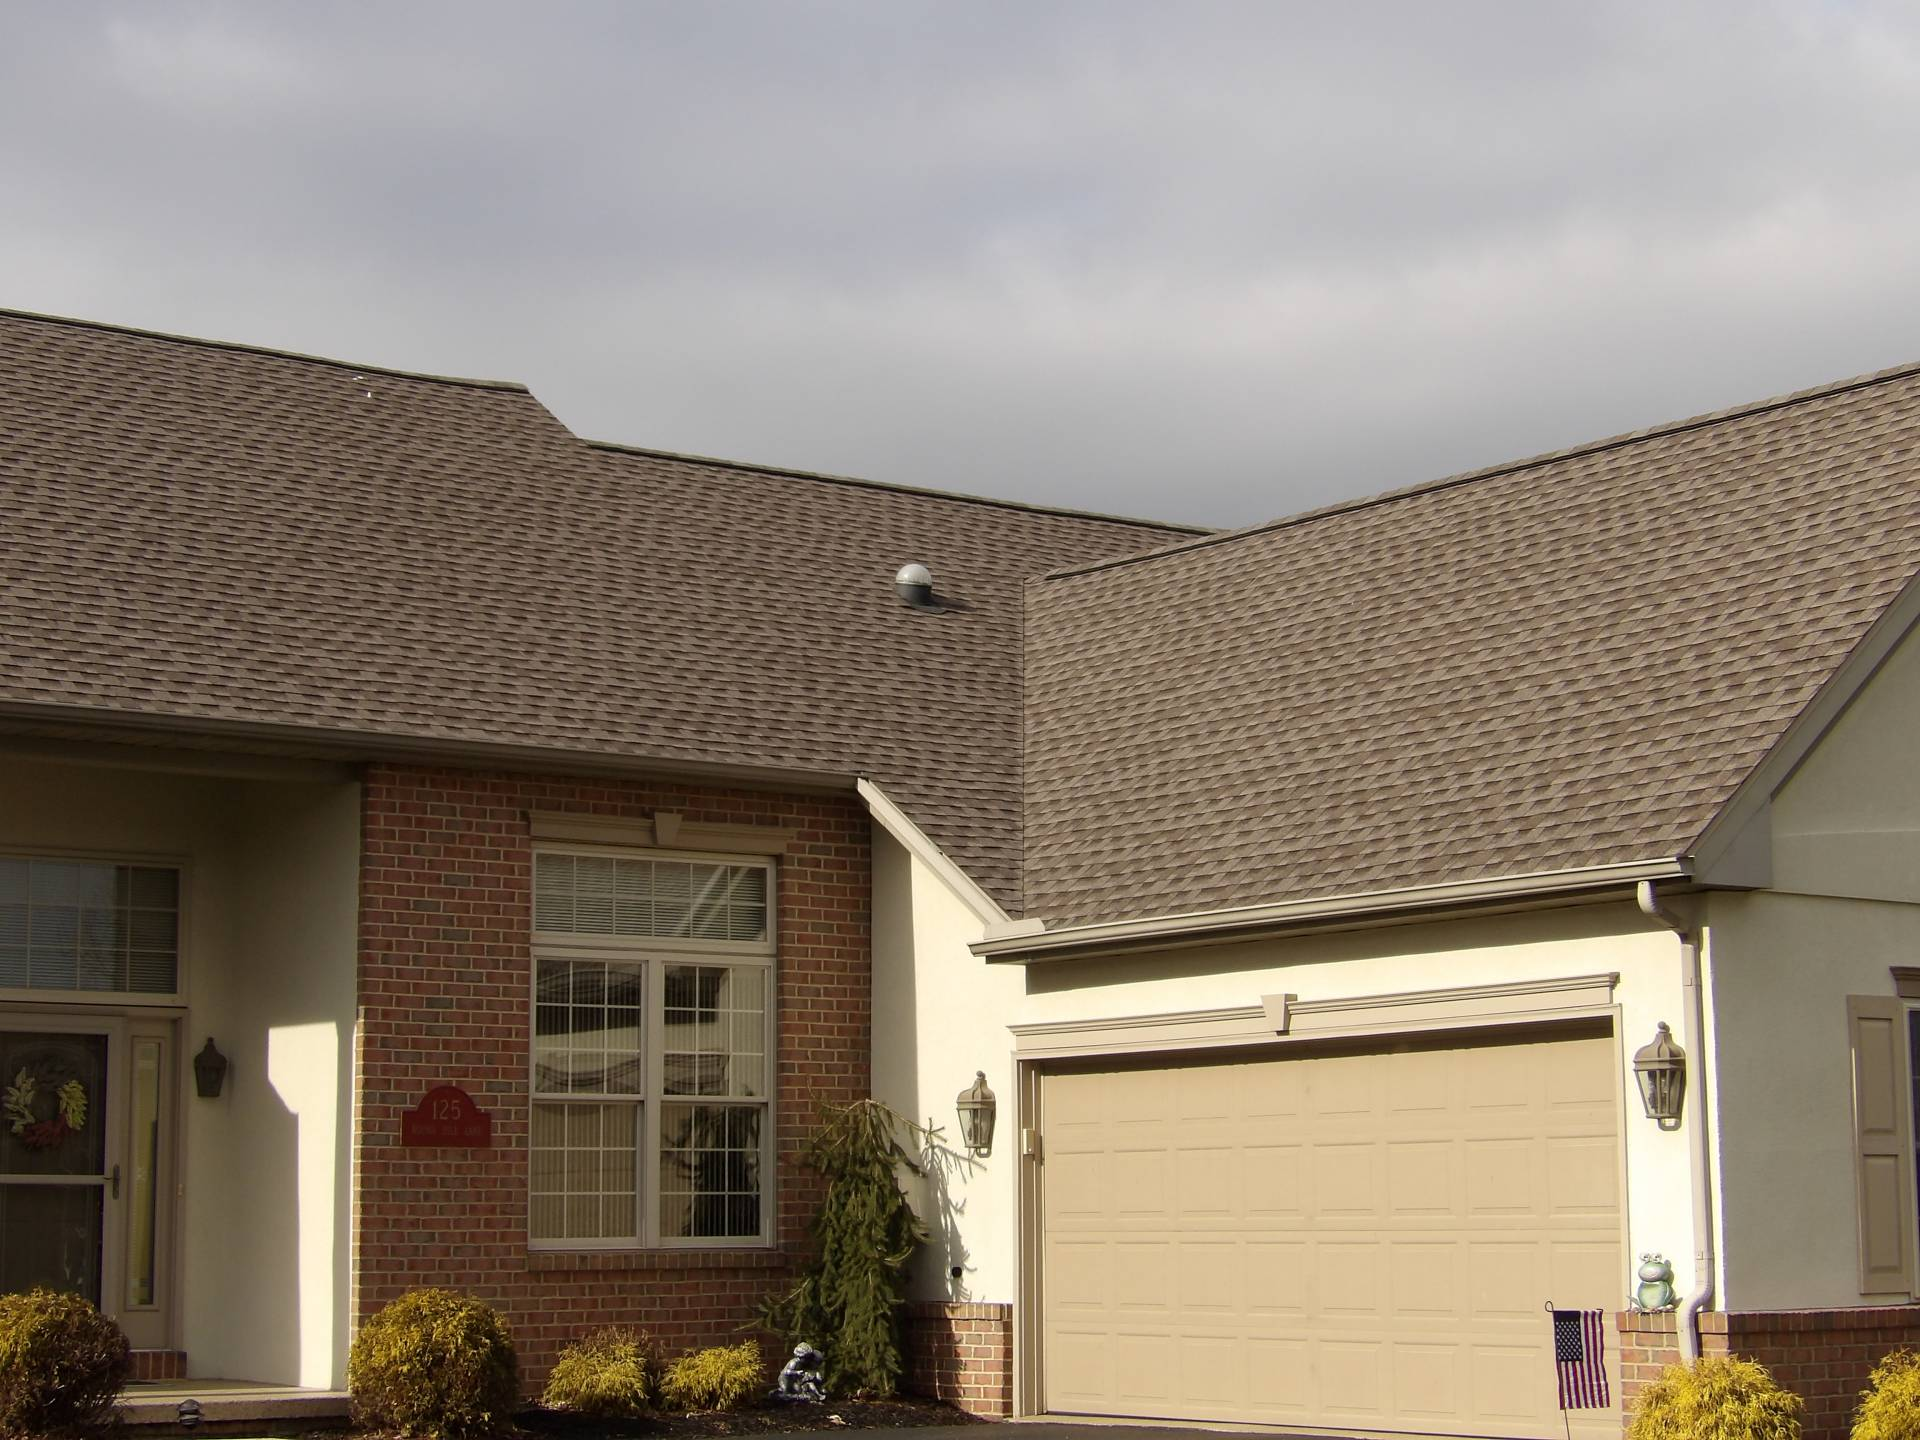 Roofing Siding Amp Gutter Photo Gallery Scenic View Roofing